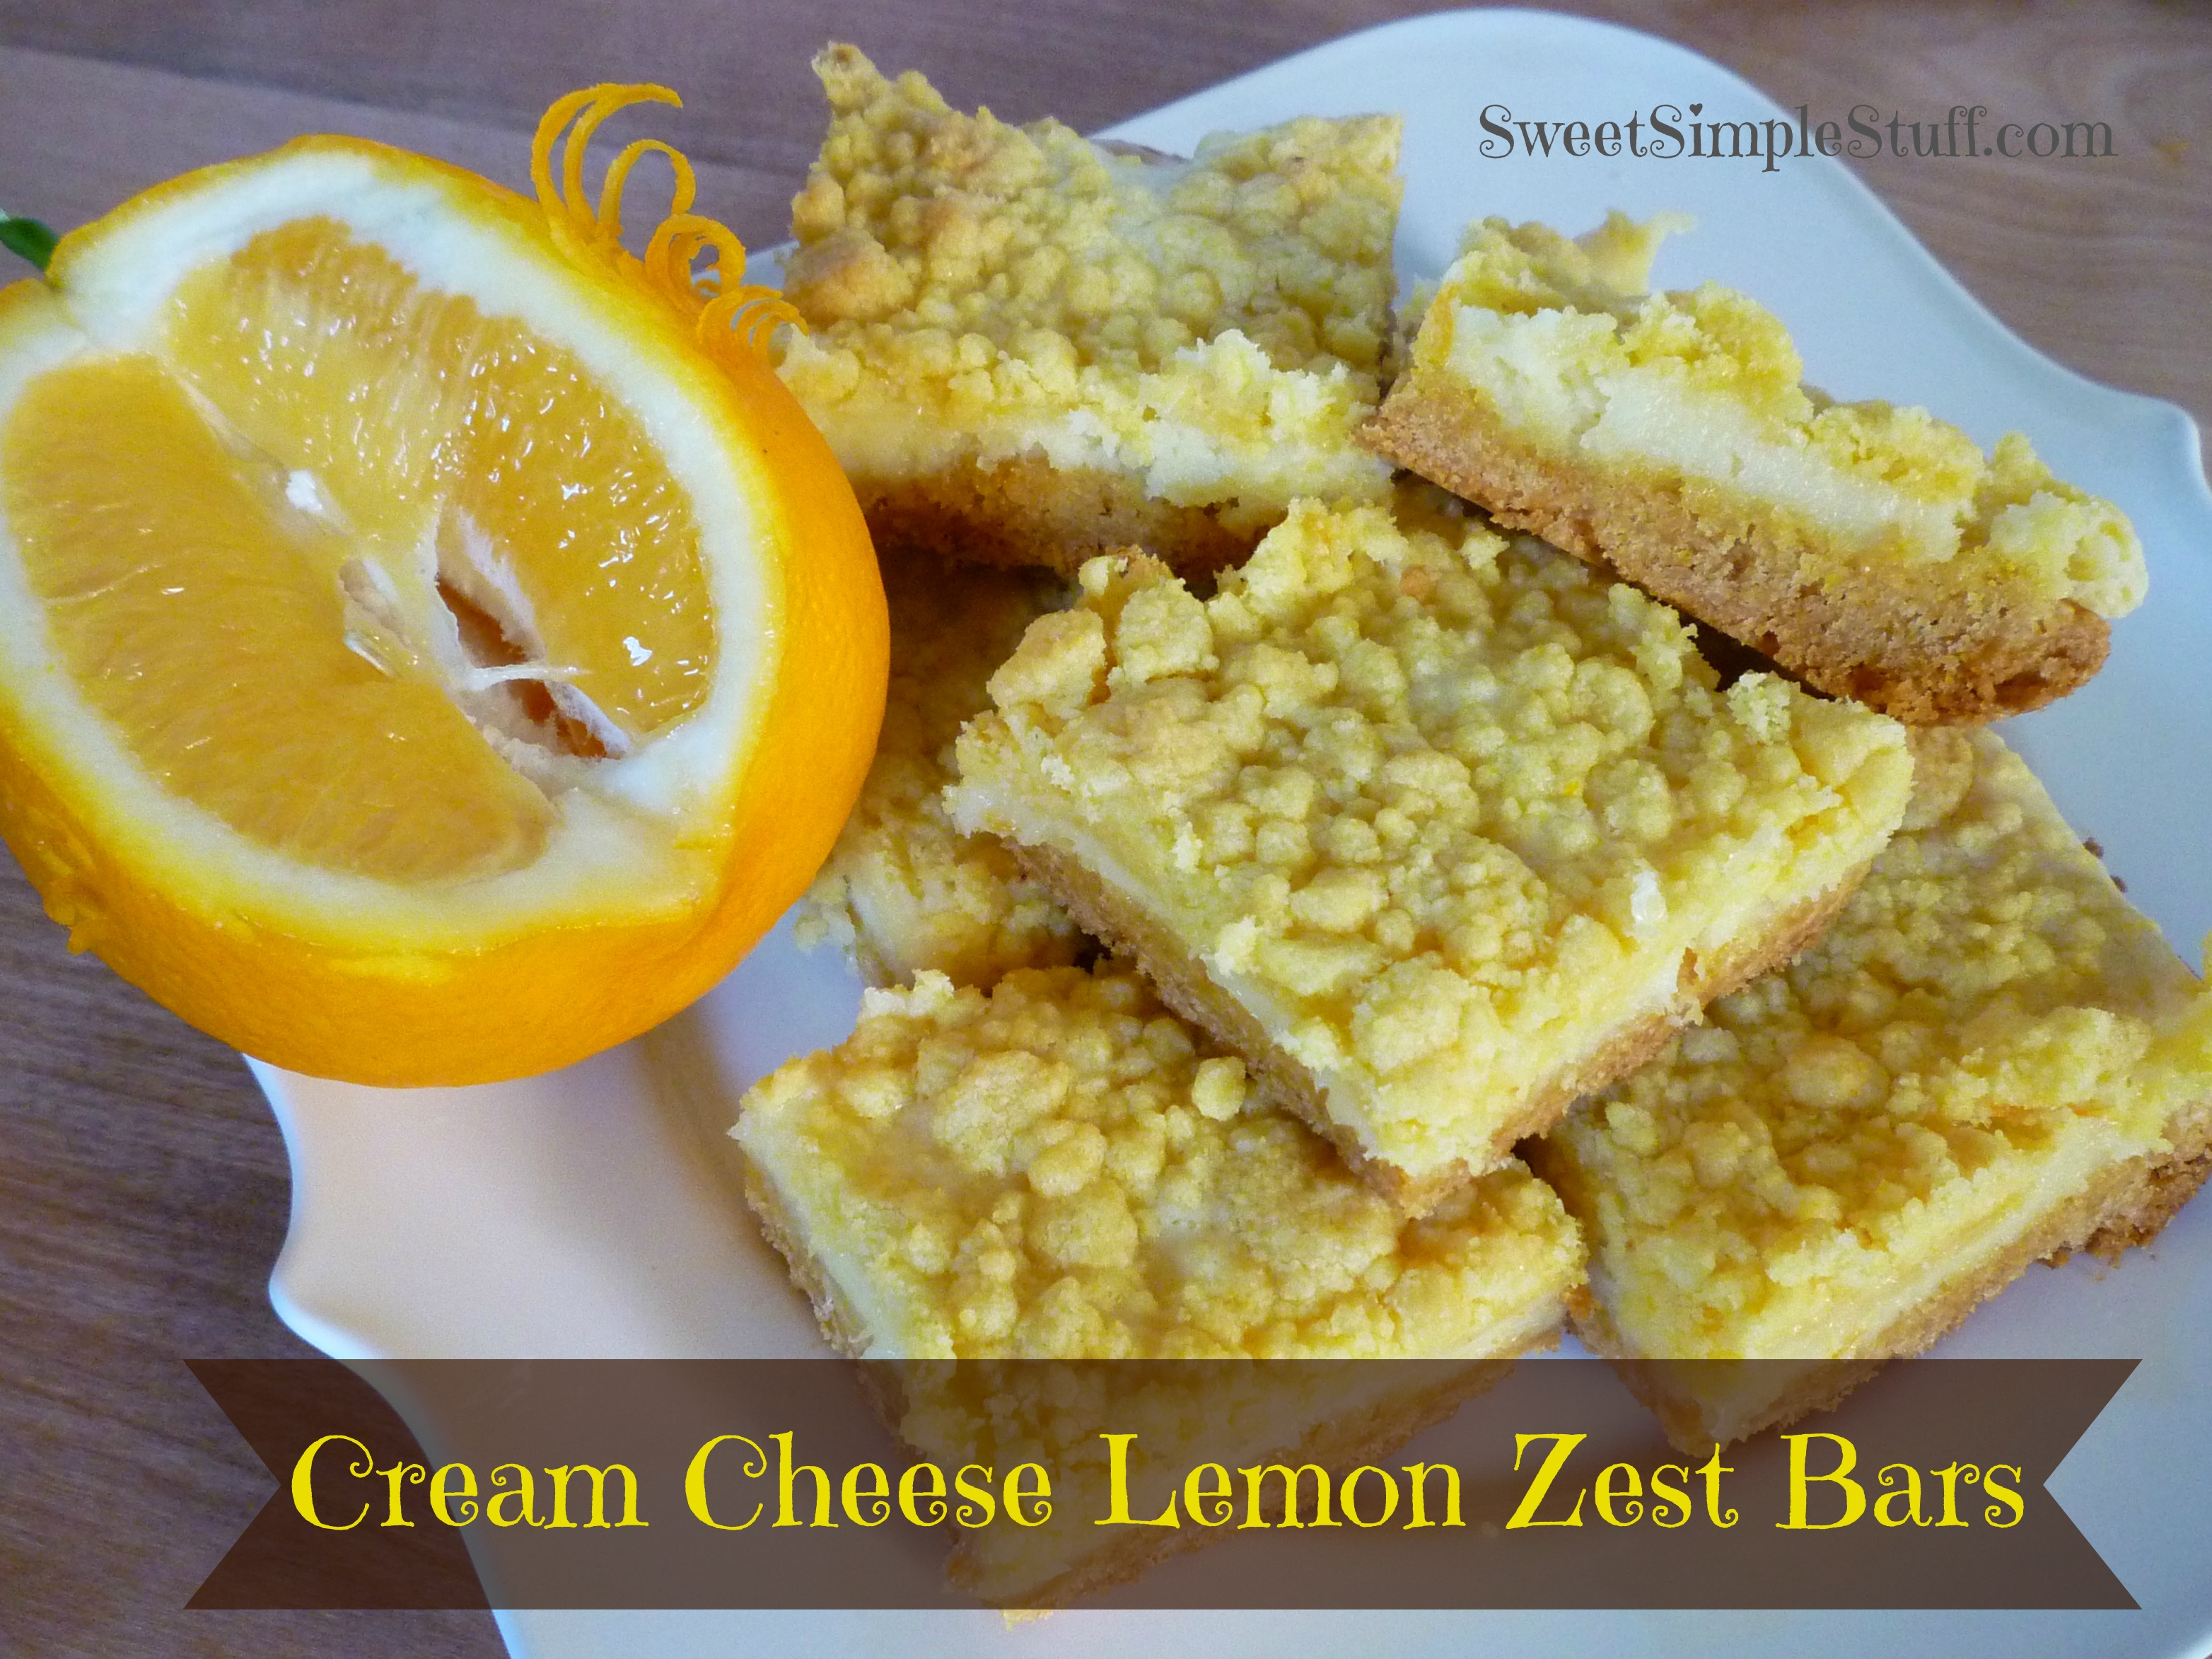 Cream Cheese Lemon Zest Bars | SWEET SIMPLE STUFF